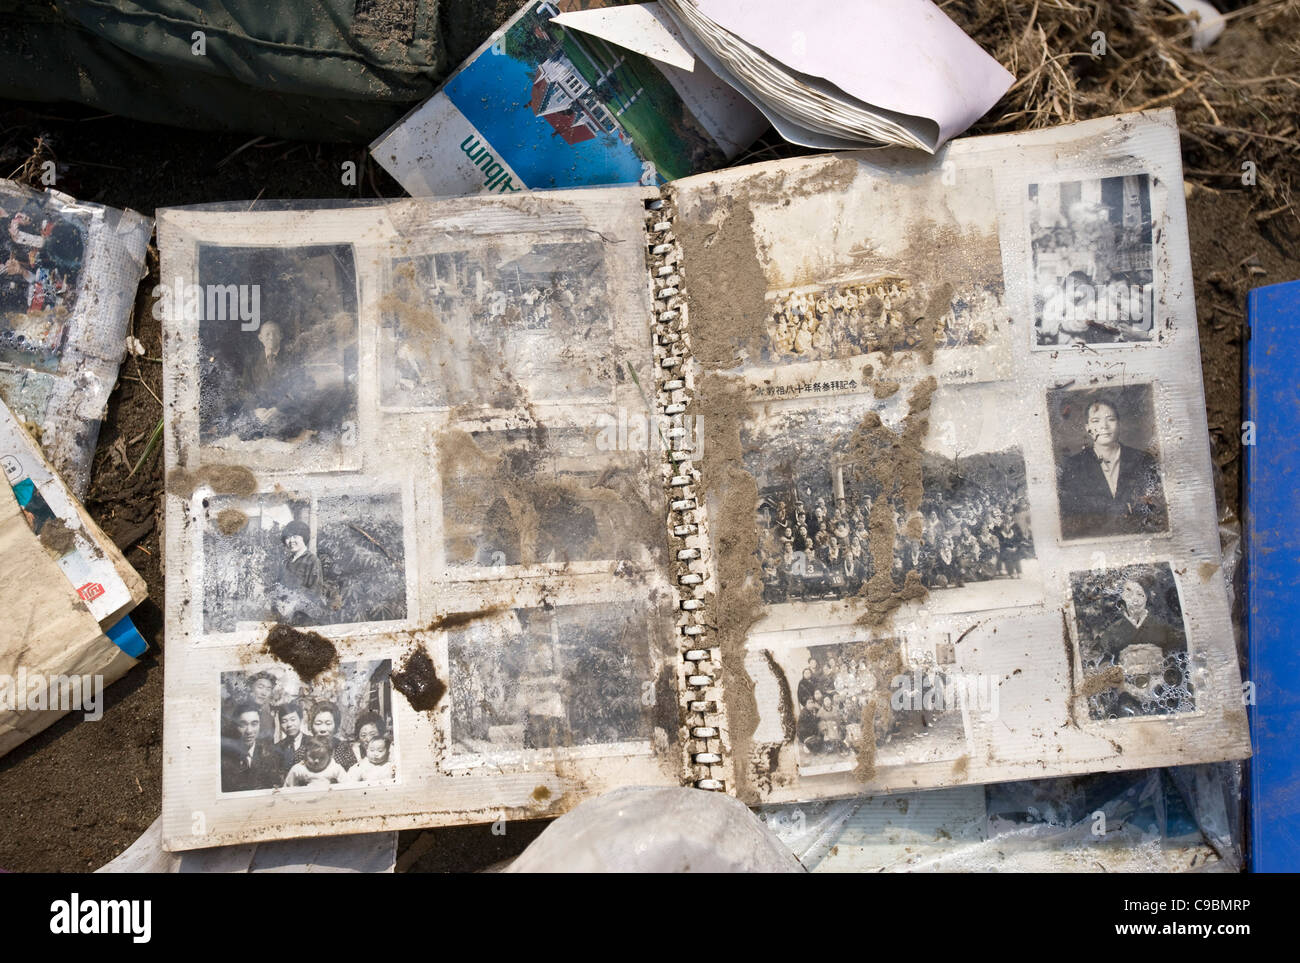 A photo album lies among the rubble of Nobiru, Miyagi Prefecture, Japan - Stock Image